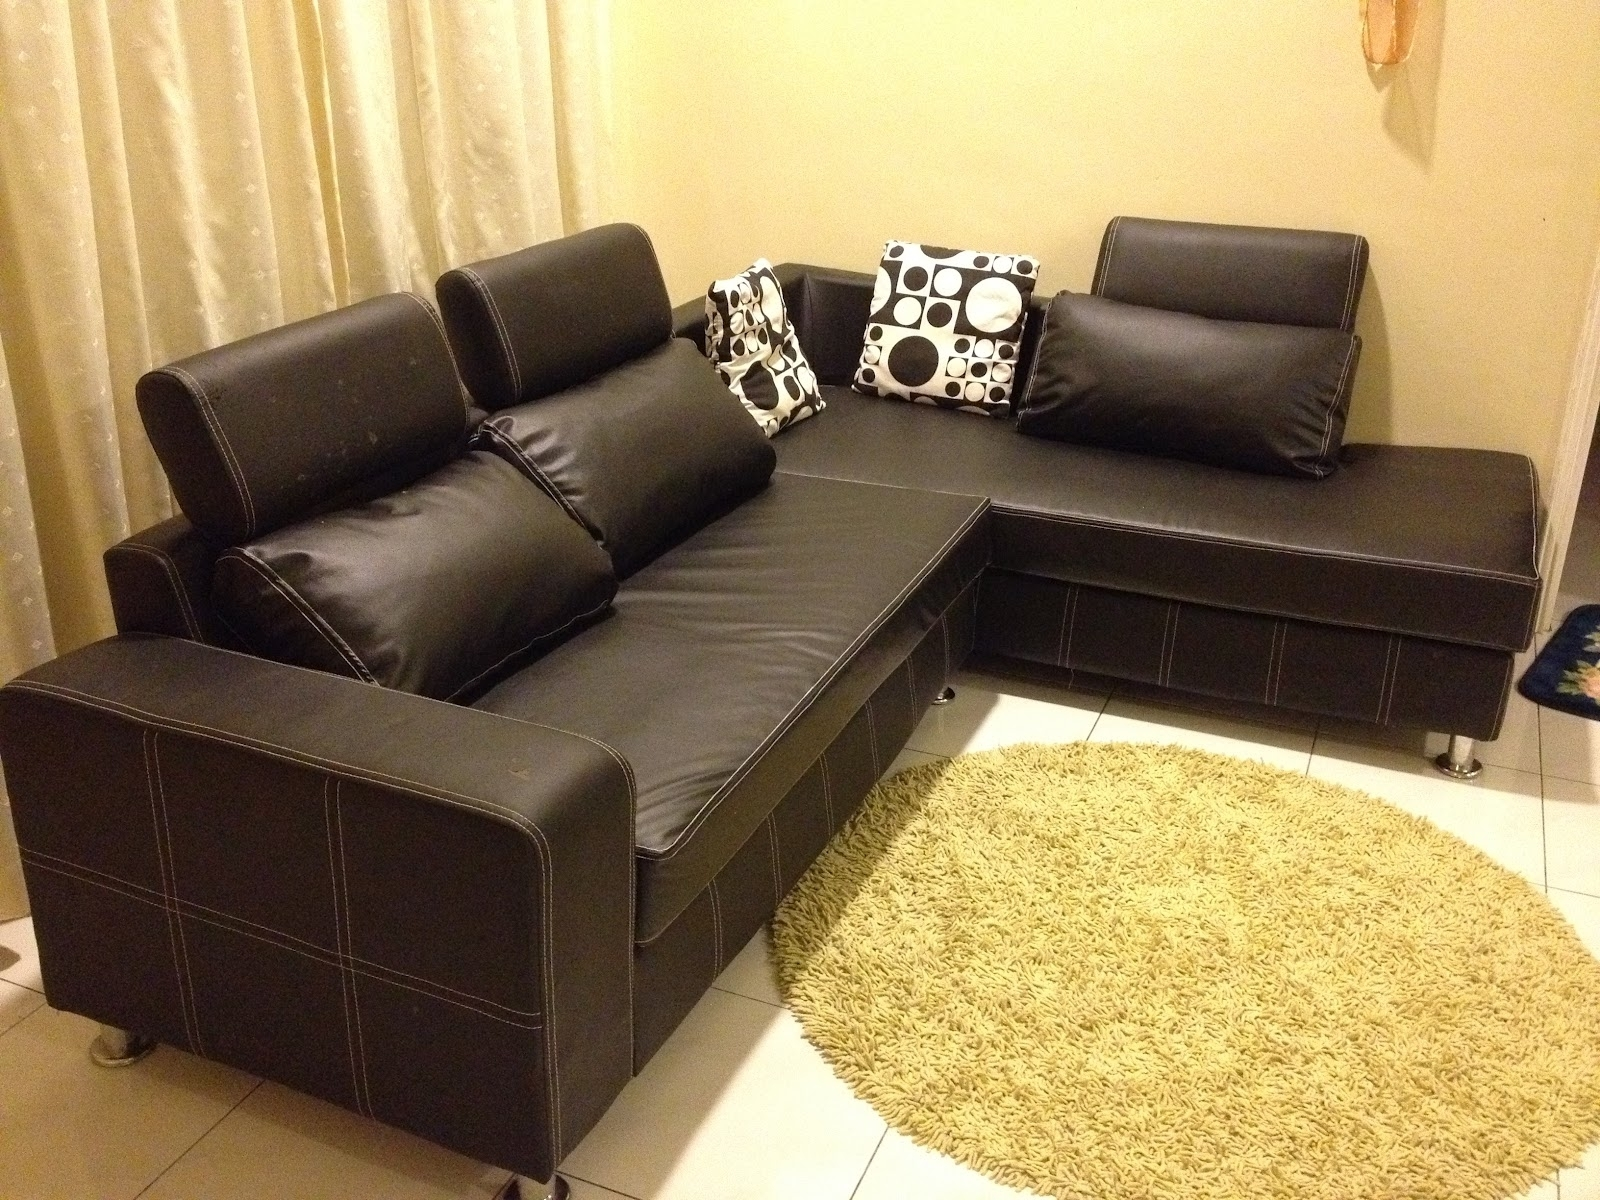 The Most Popular Leather Sofa For Sale Philippines Within Sofa In Philippines Sectional Sofas (Image 10 of 10)